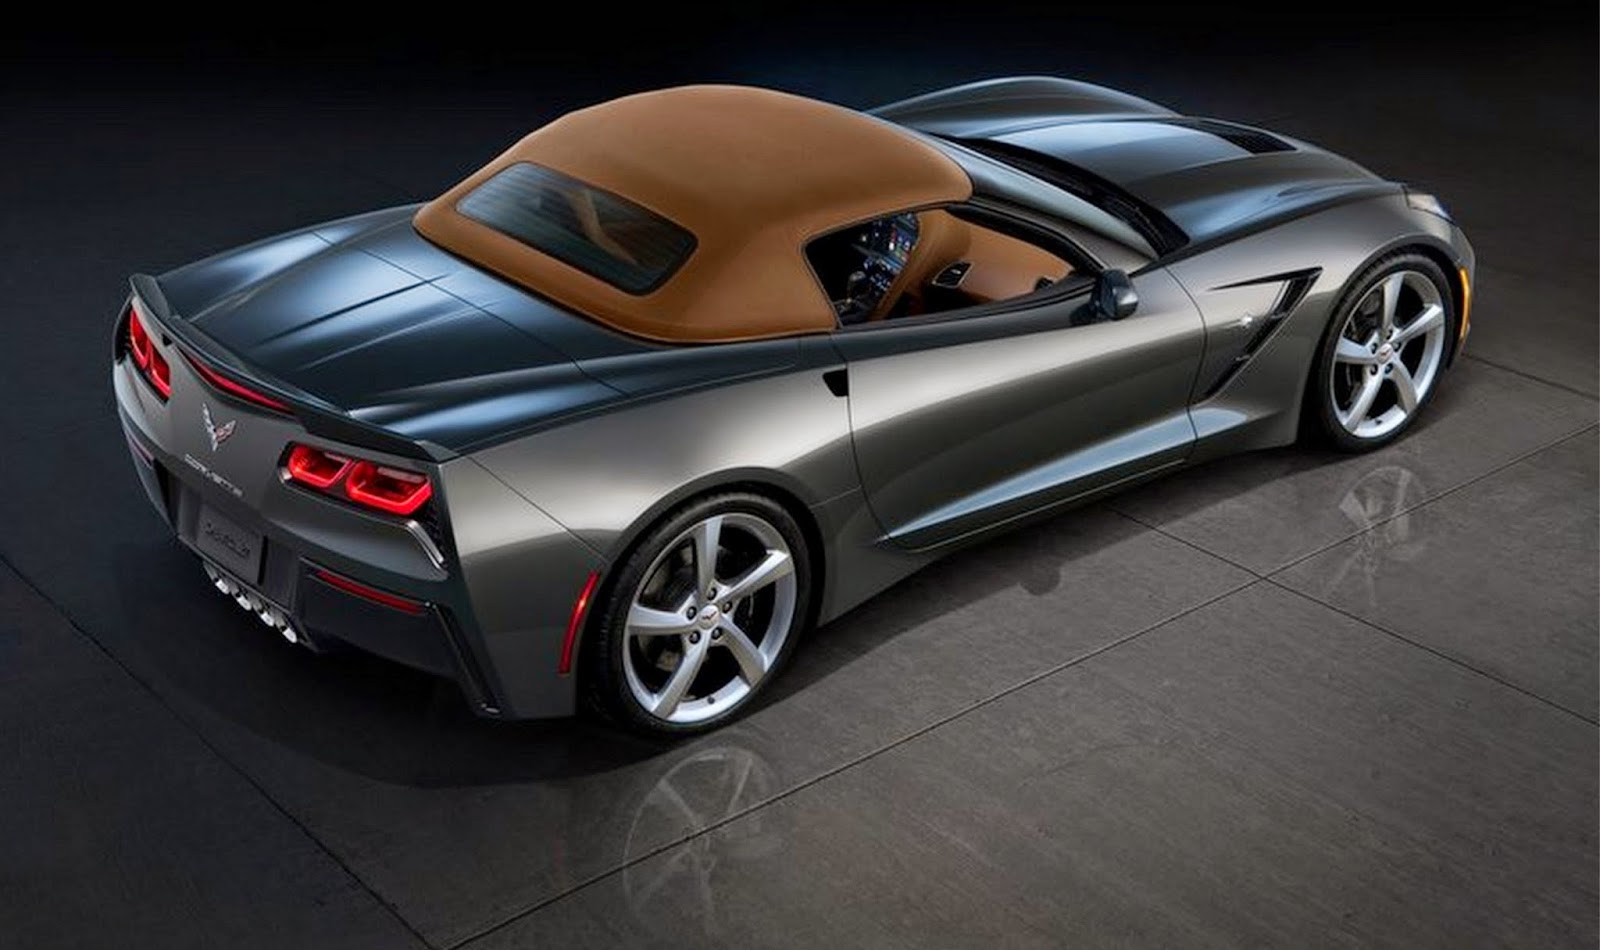 Carro - Chevrolet Corvette C7 Stingray Convertible (2014)